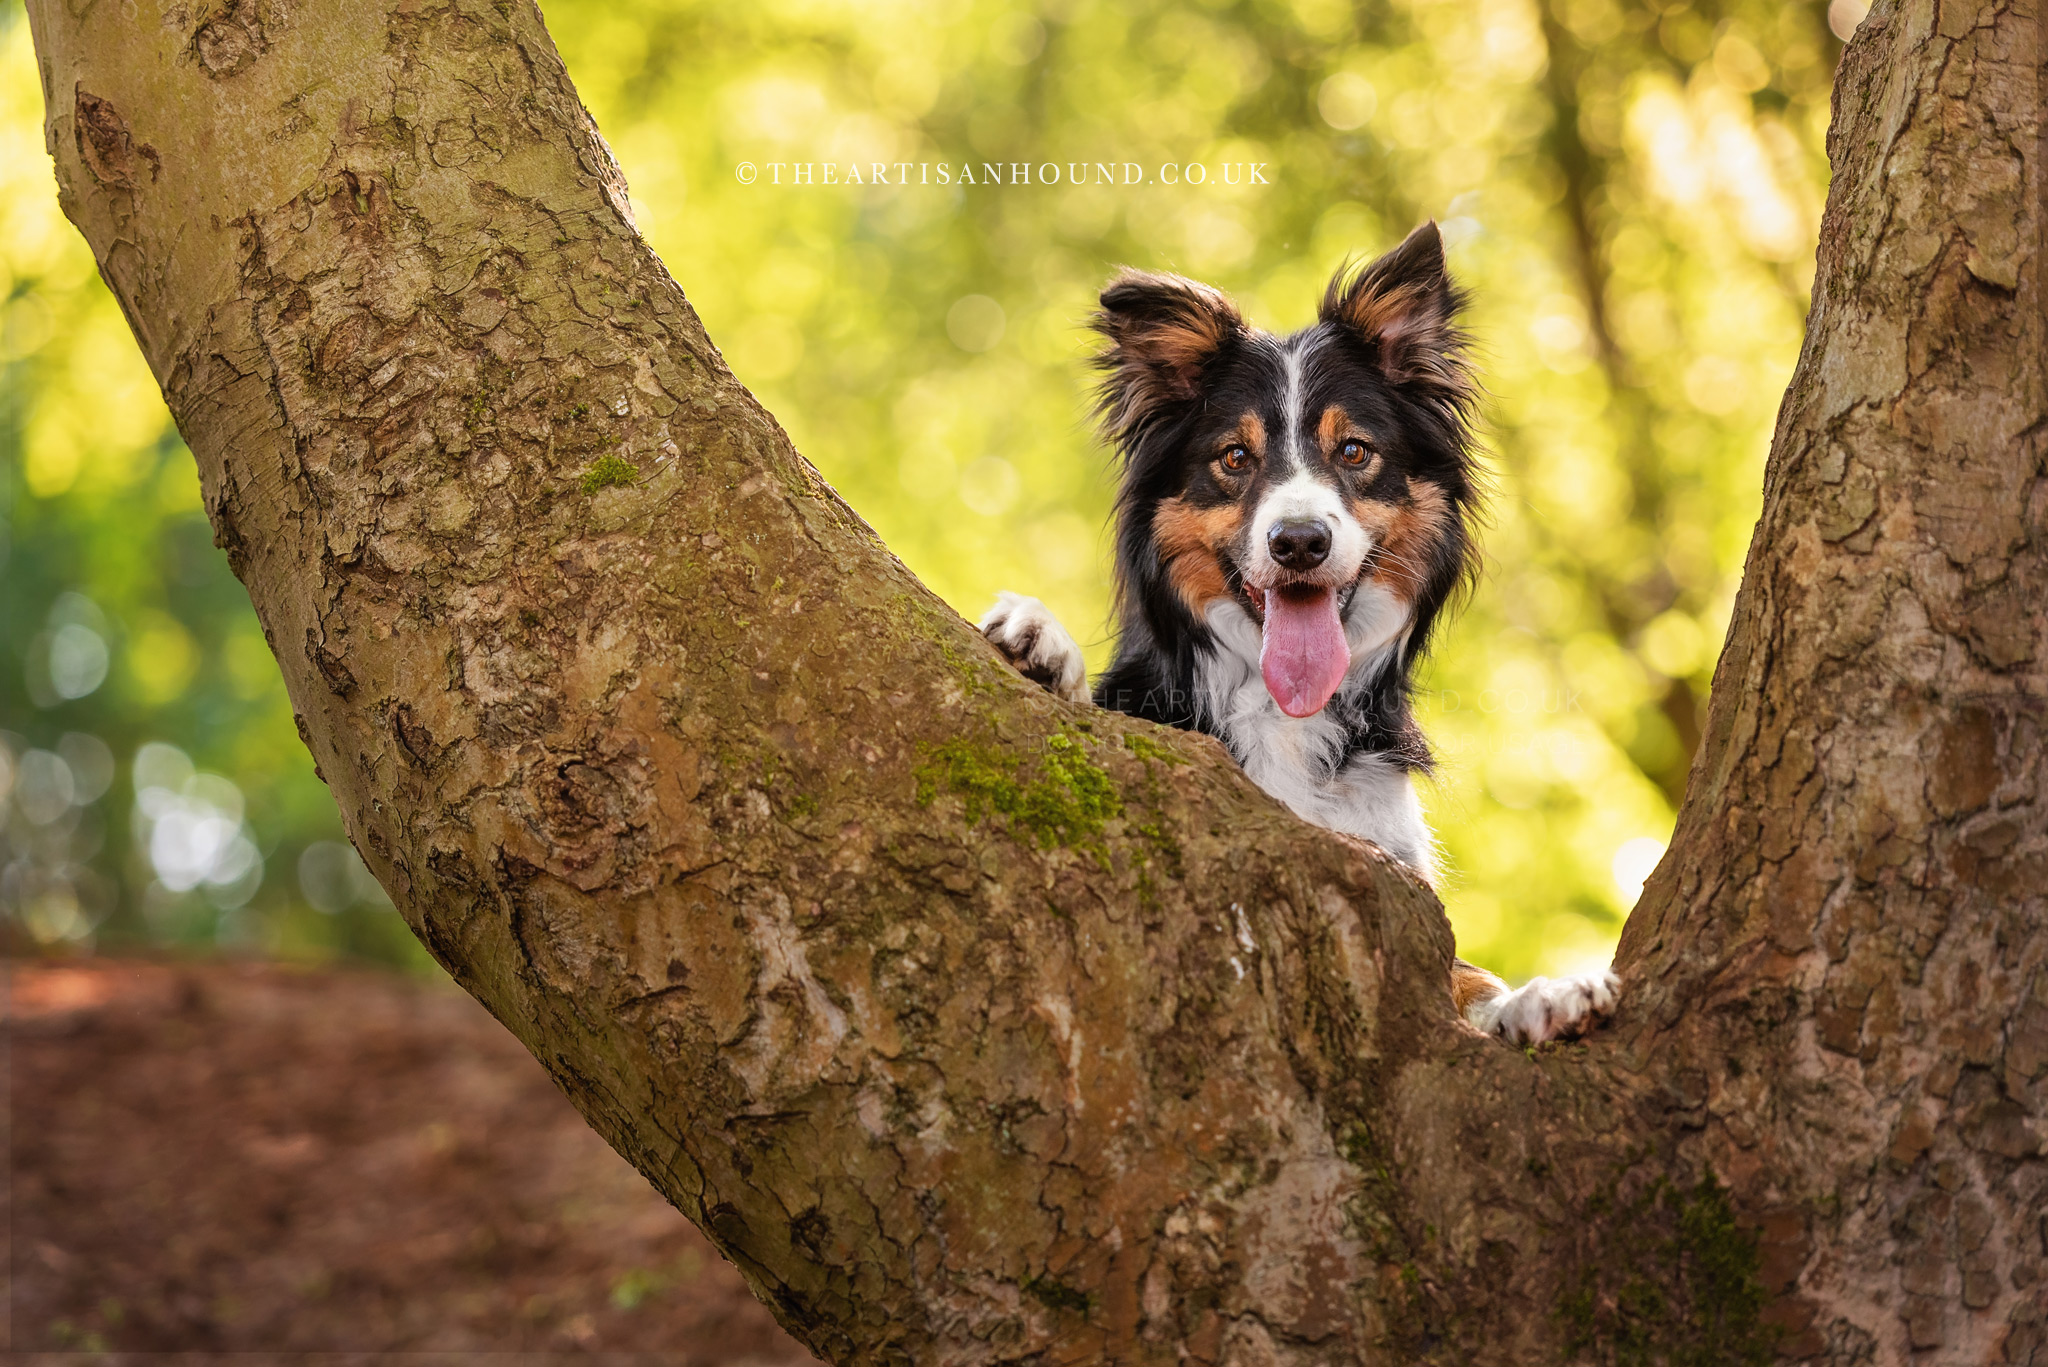 Border Collie dog peeking through gap in tree